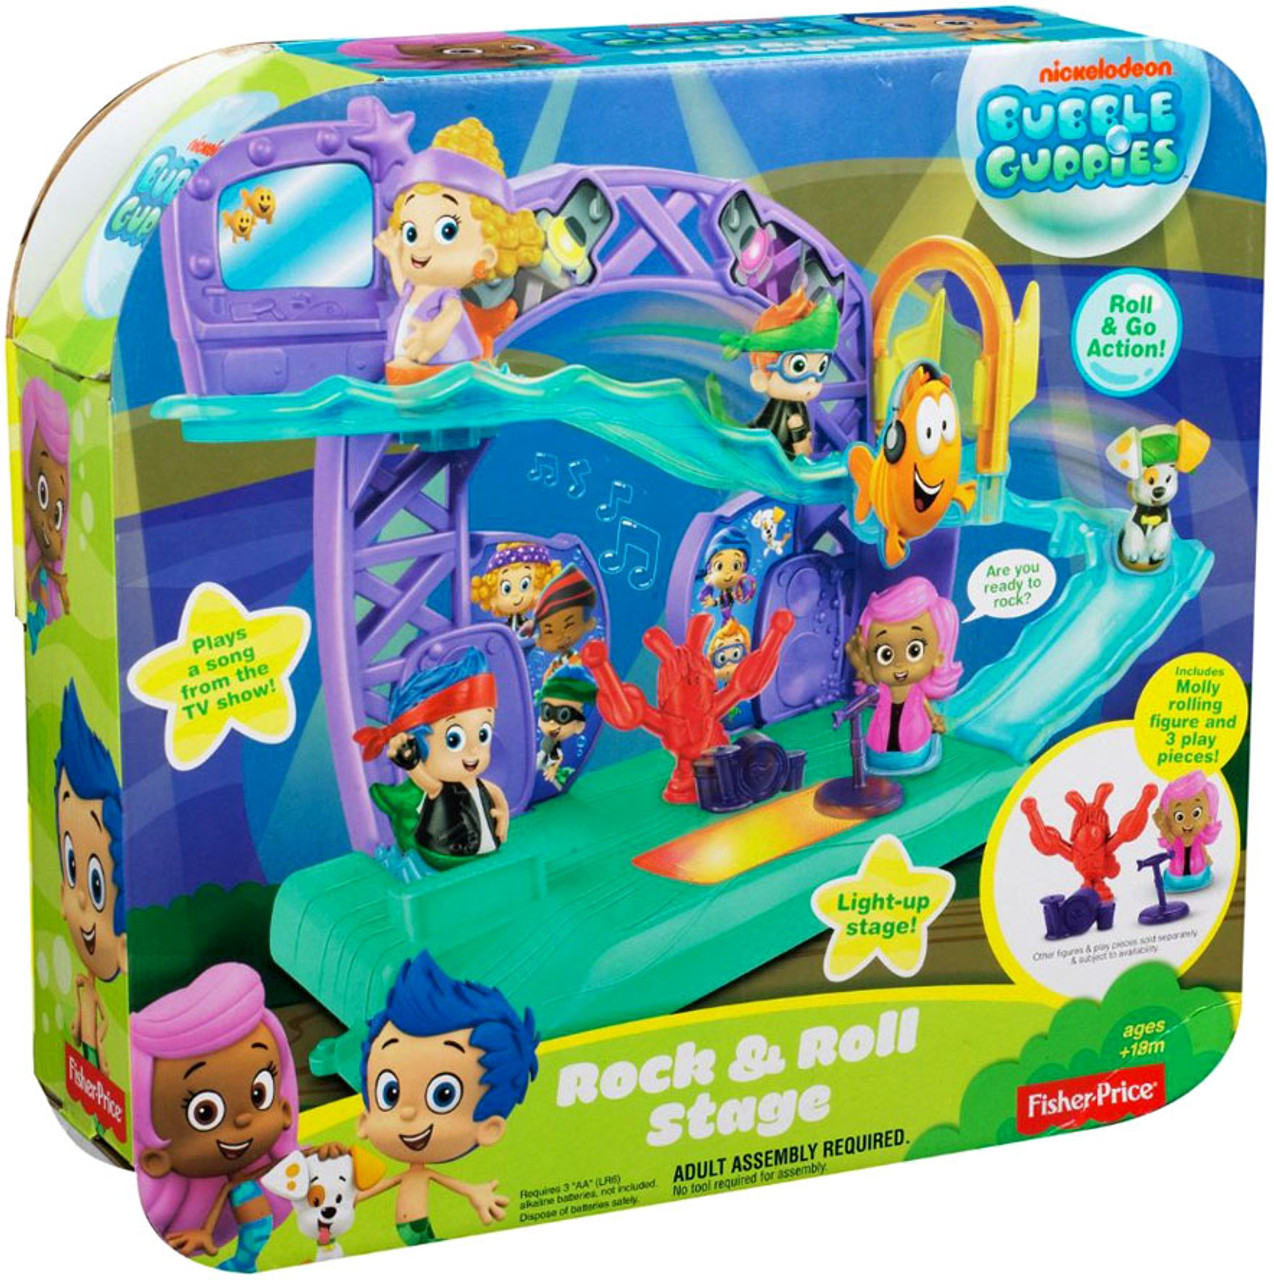 Fisher Price Bubble Guppies Rock & Roll Stage Playset